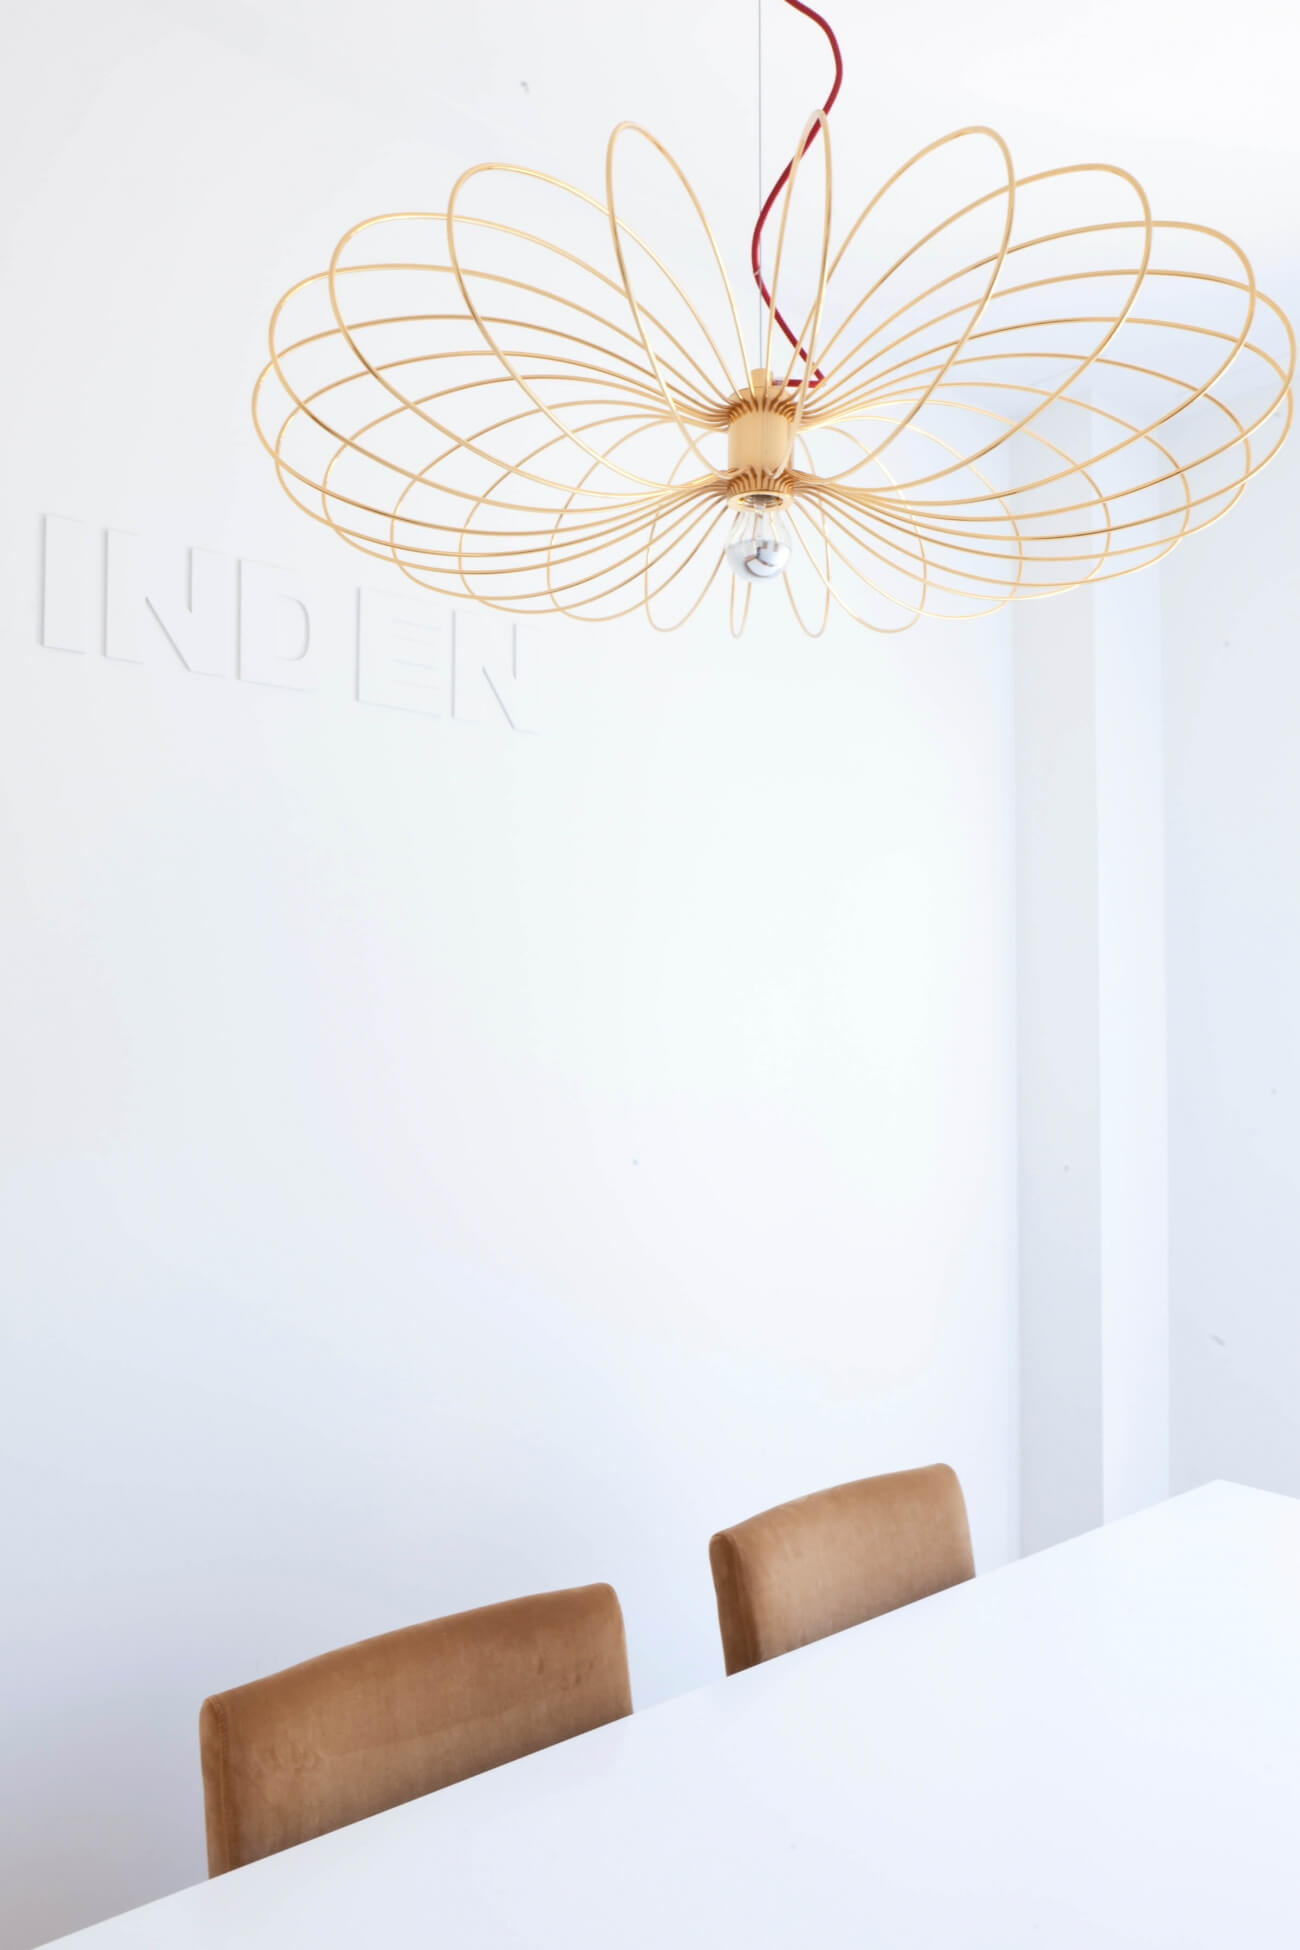 Flying Spider designed by Autoban and produced by De La Espada in office interior by Blue Fabric